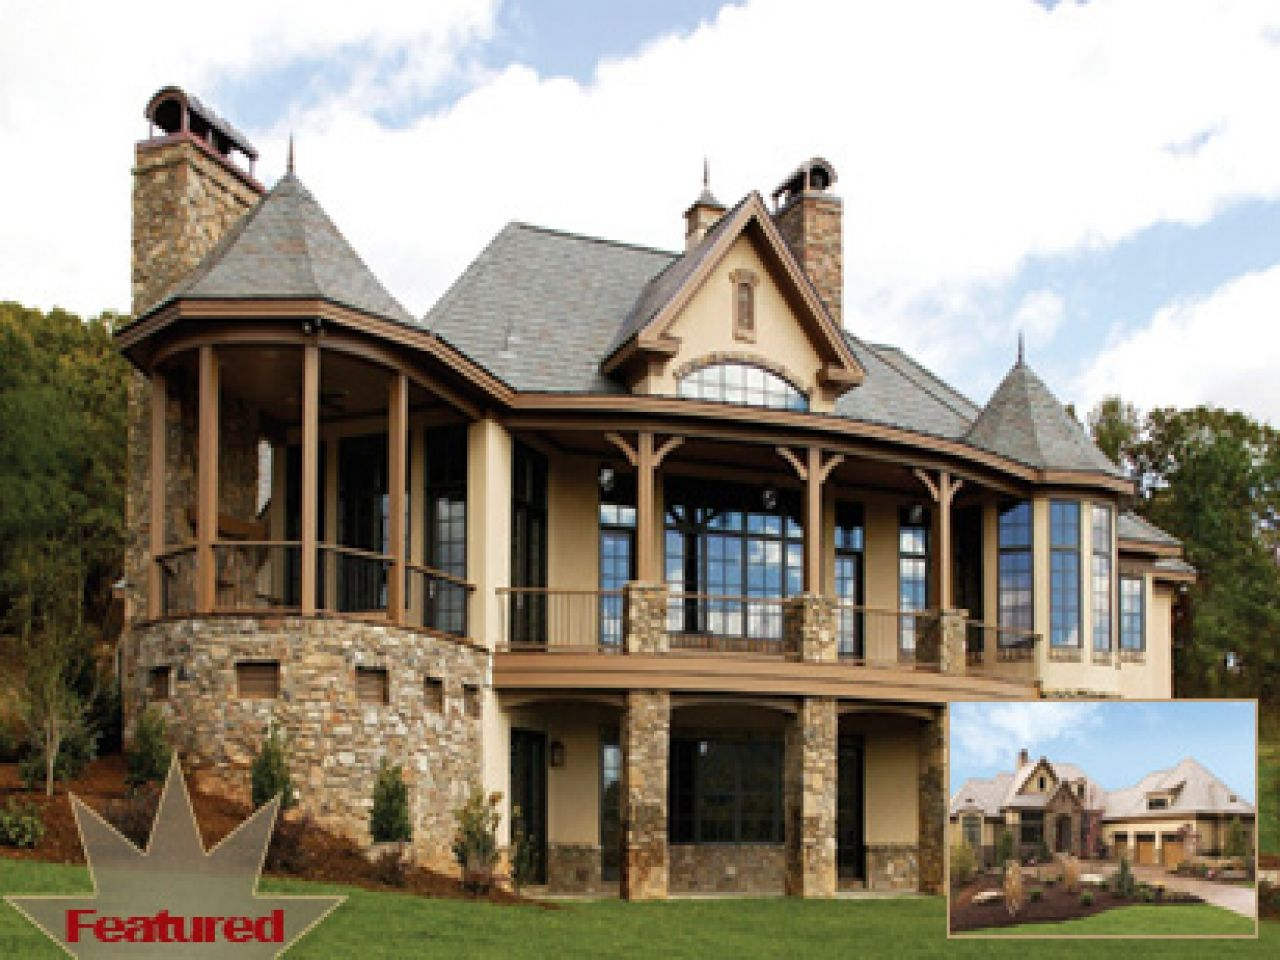 House Plans Walkout Basement French Country Best European Photos Dream House Castle House My Dream Home